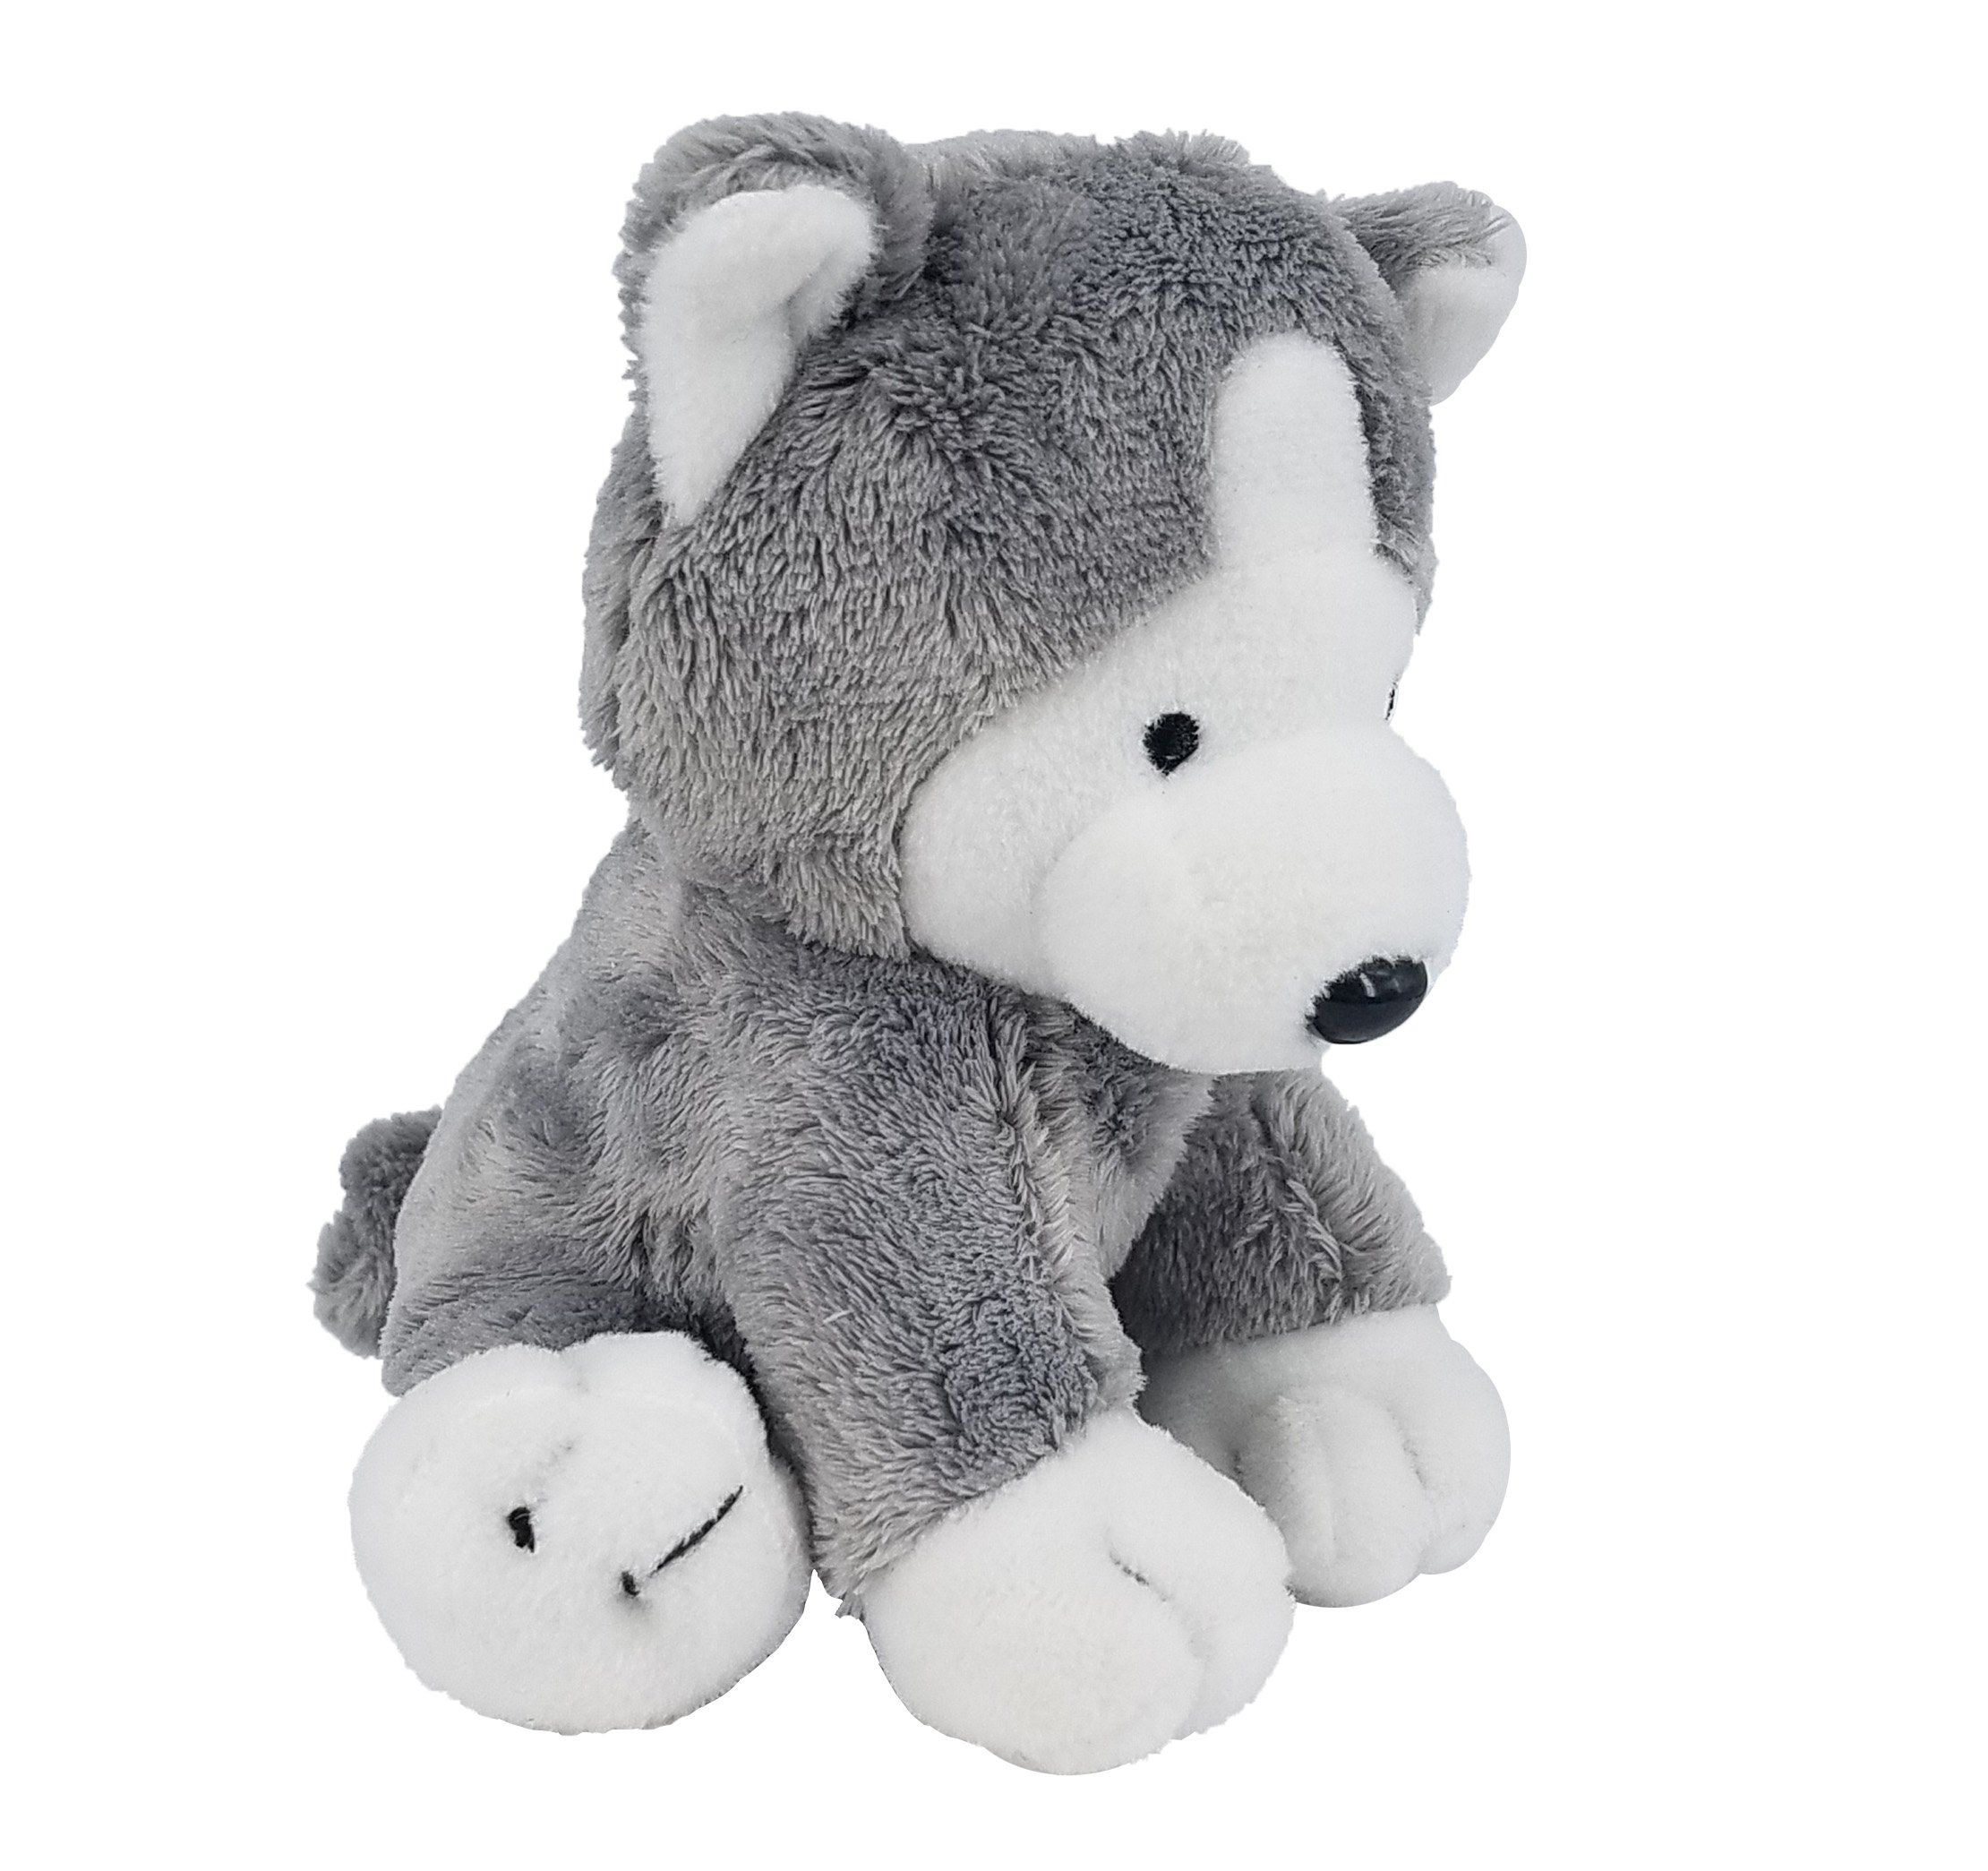 Stuffed Dog Vibrating Plush Soft Toys Sasa Want To Know More